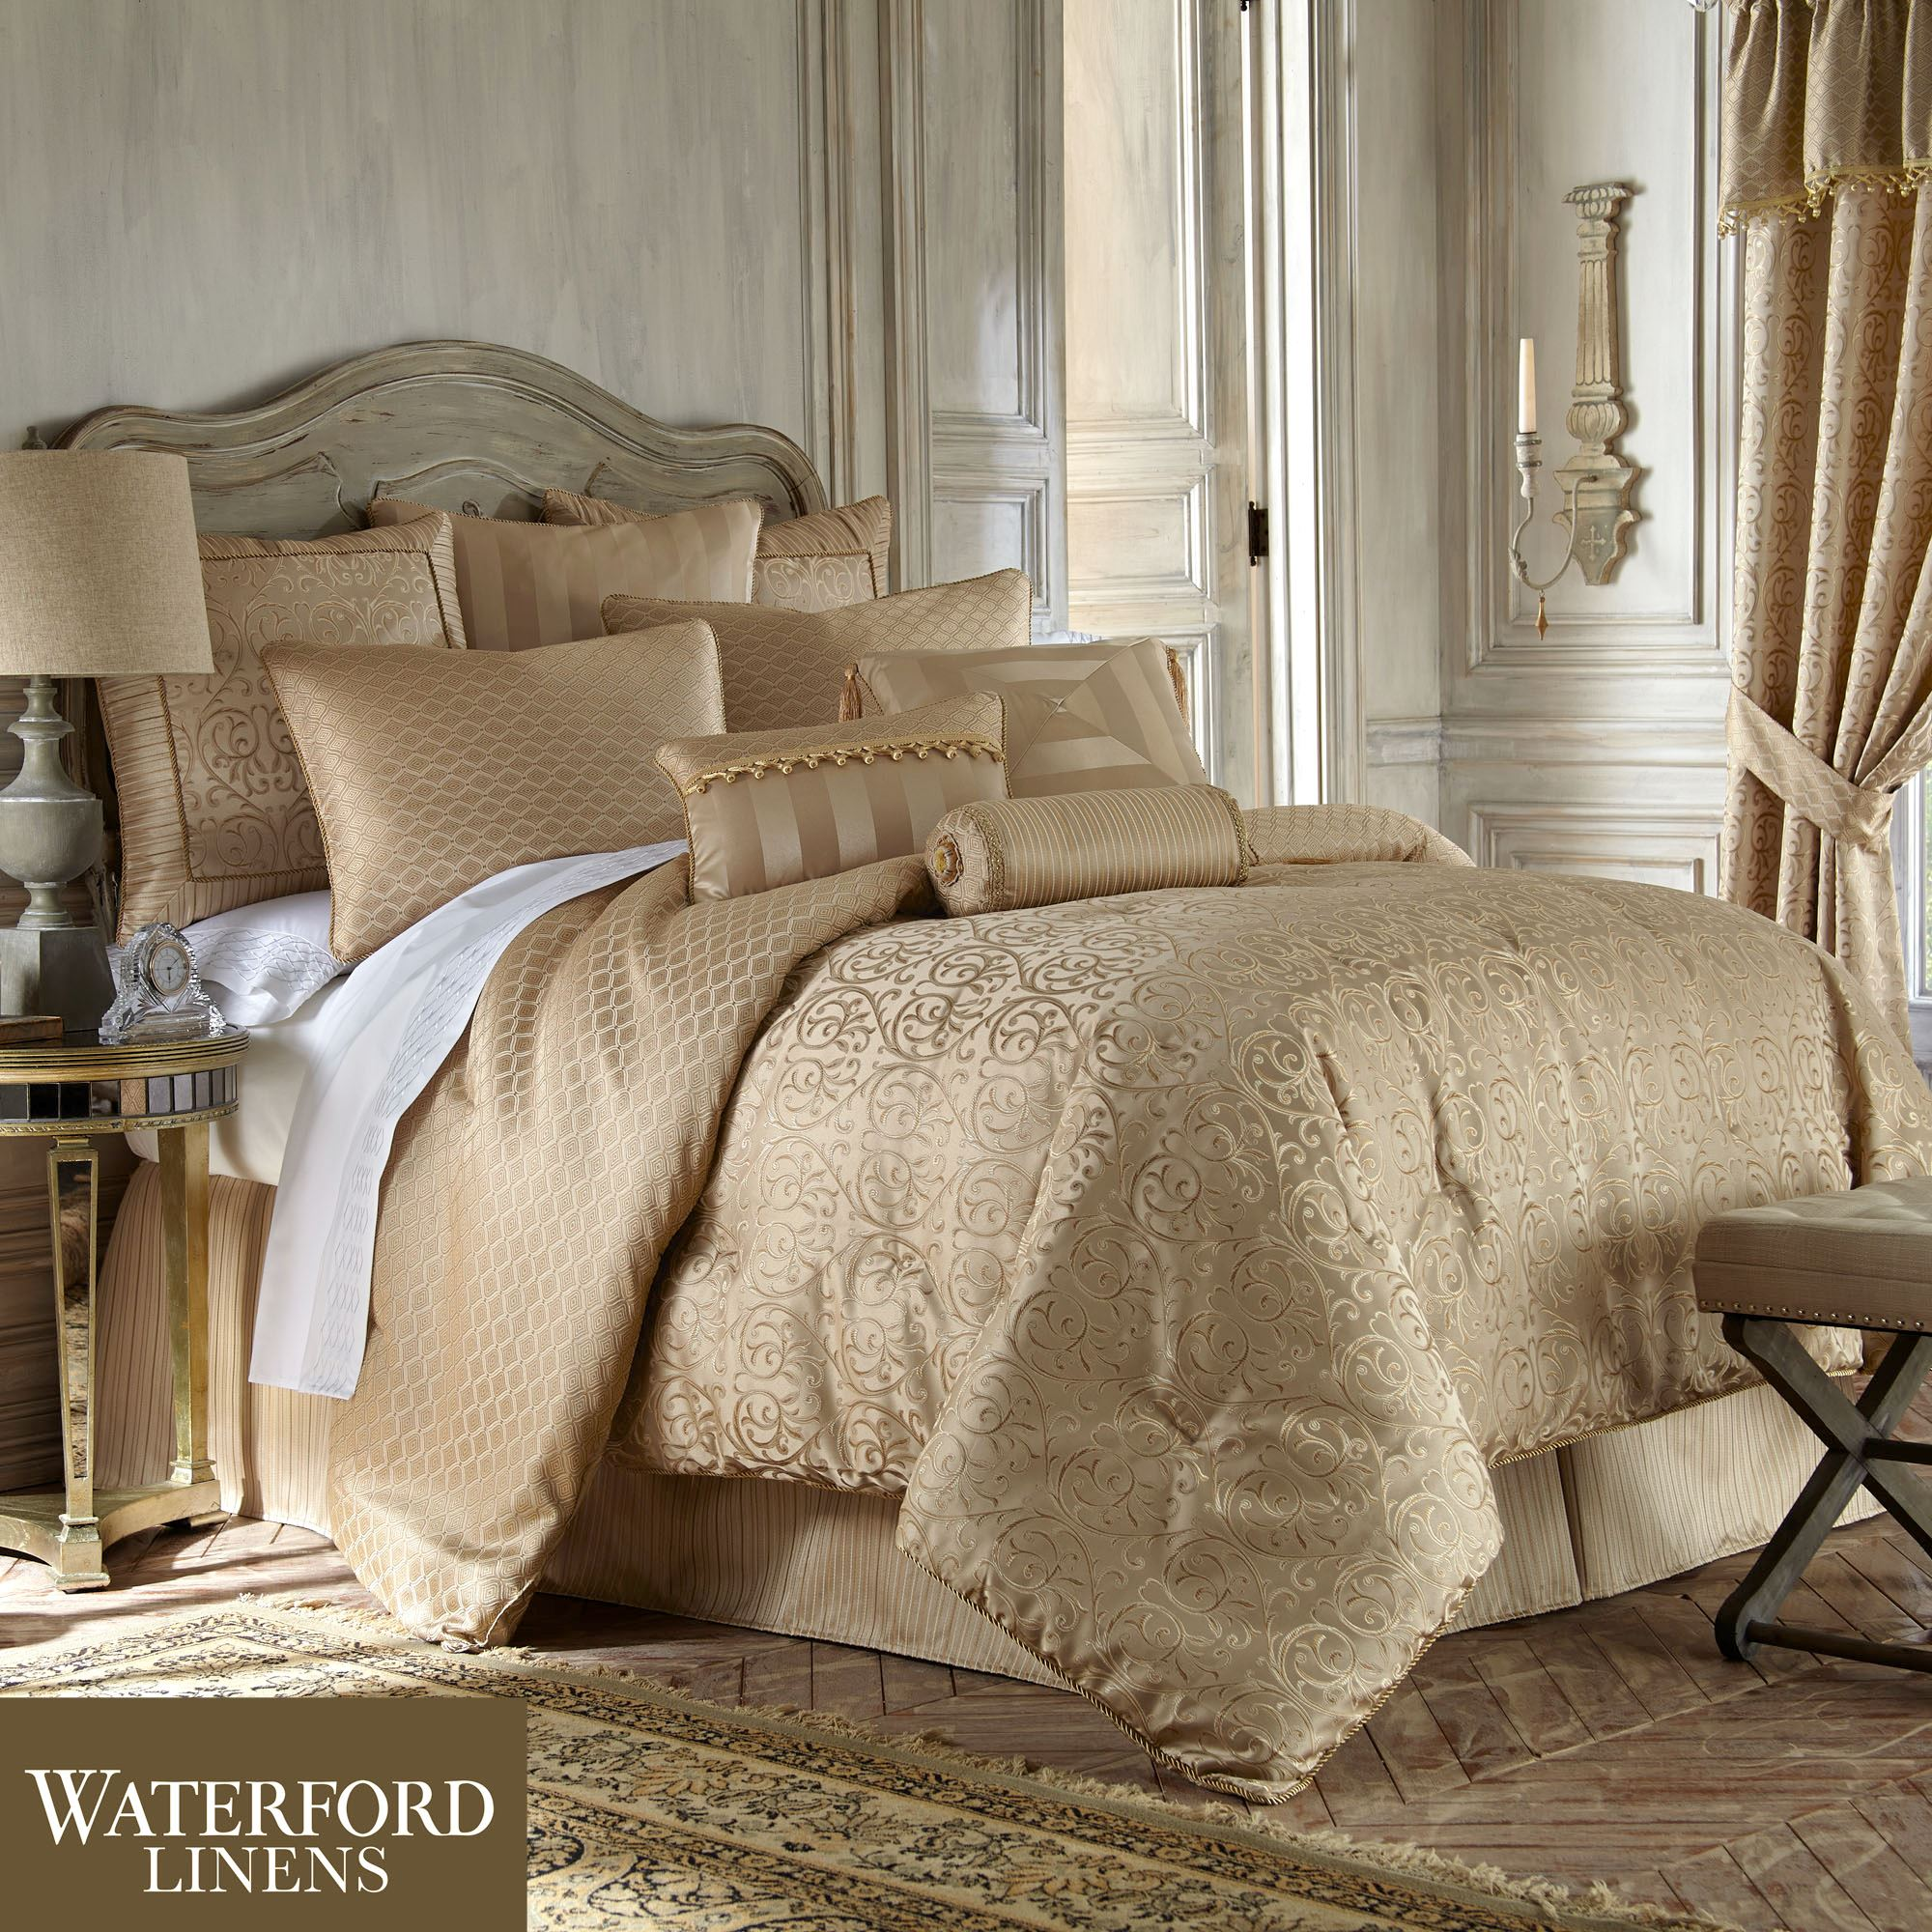 Anya Gold Comforter Bedding From Waterford Linens